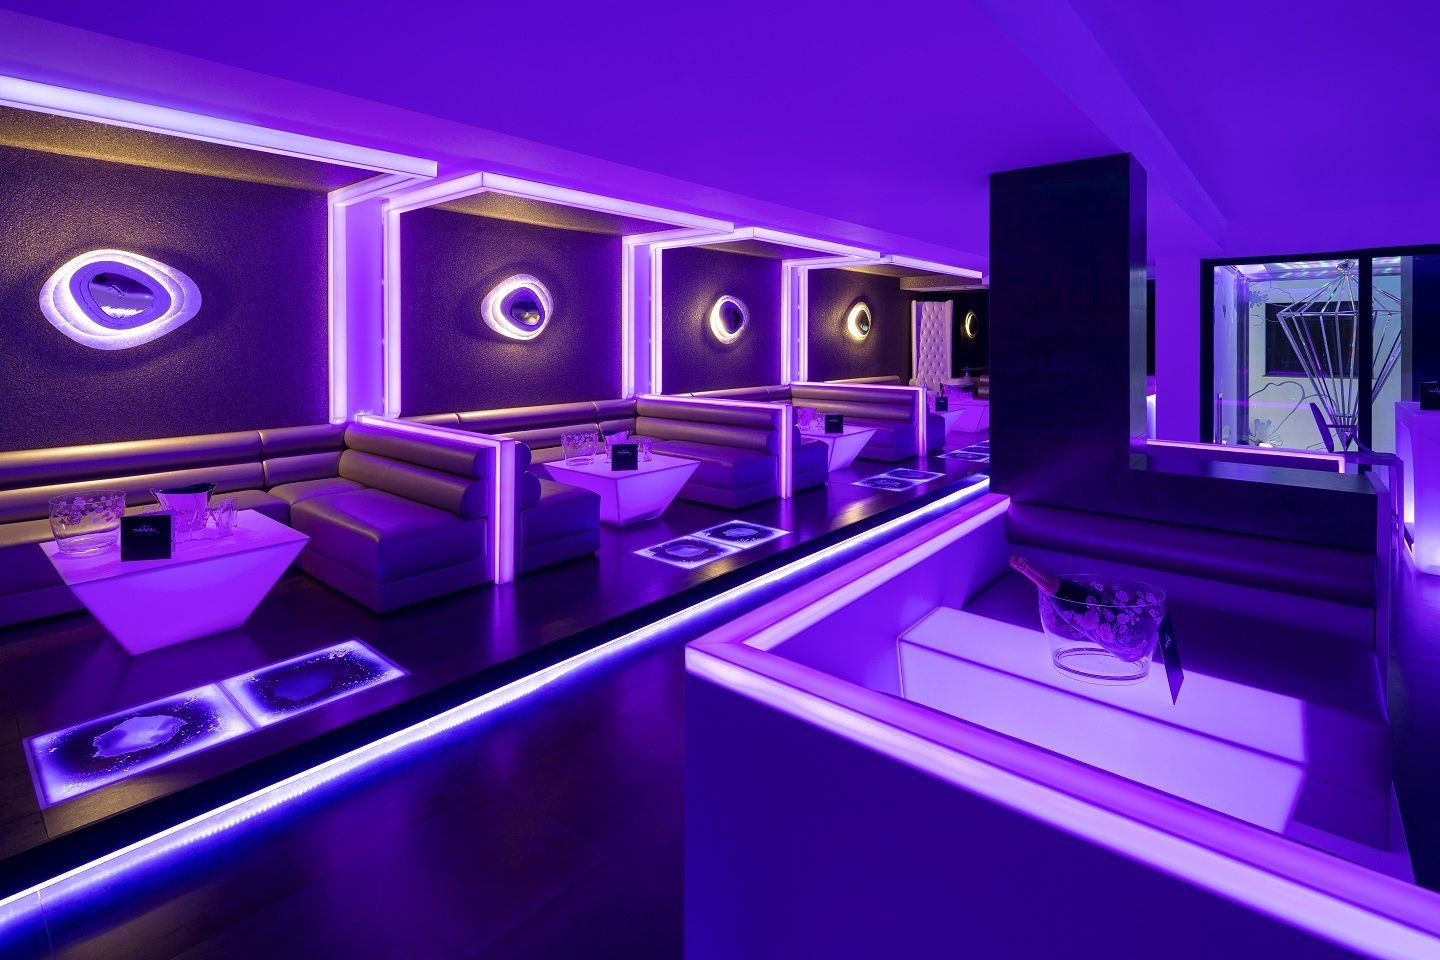 Diseno By U Design En Discoteca Mask Krion Translucido Bar Lounge Design Hookah Lounge Decor Nightclub Design